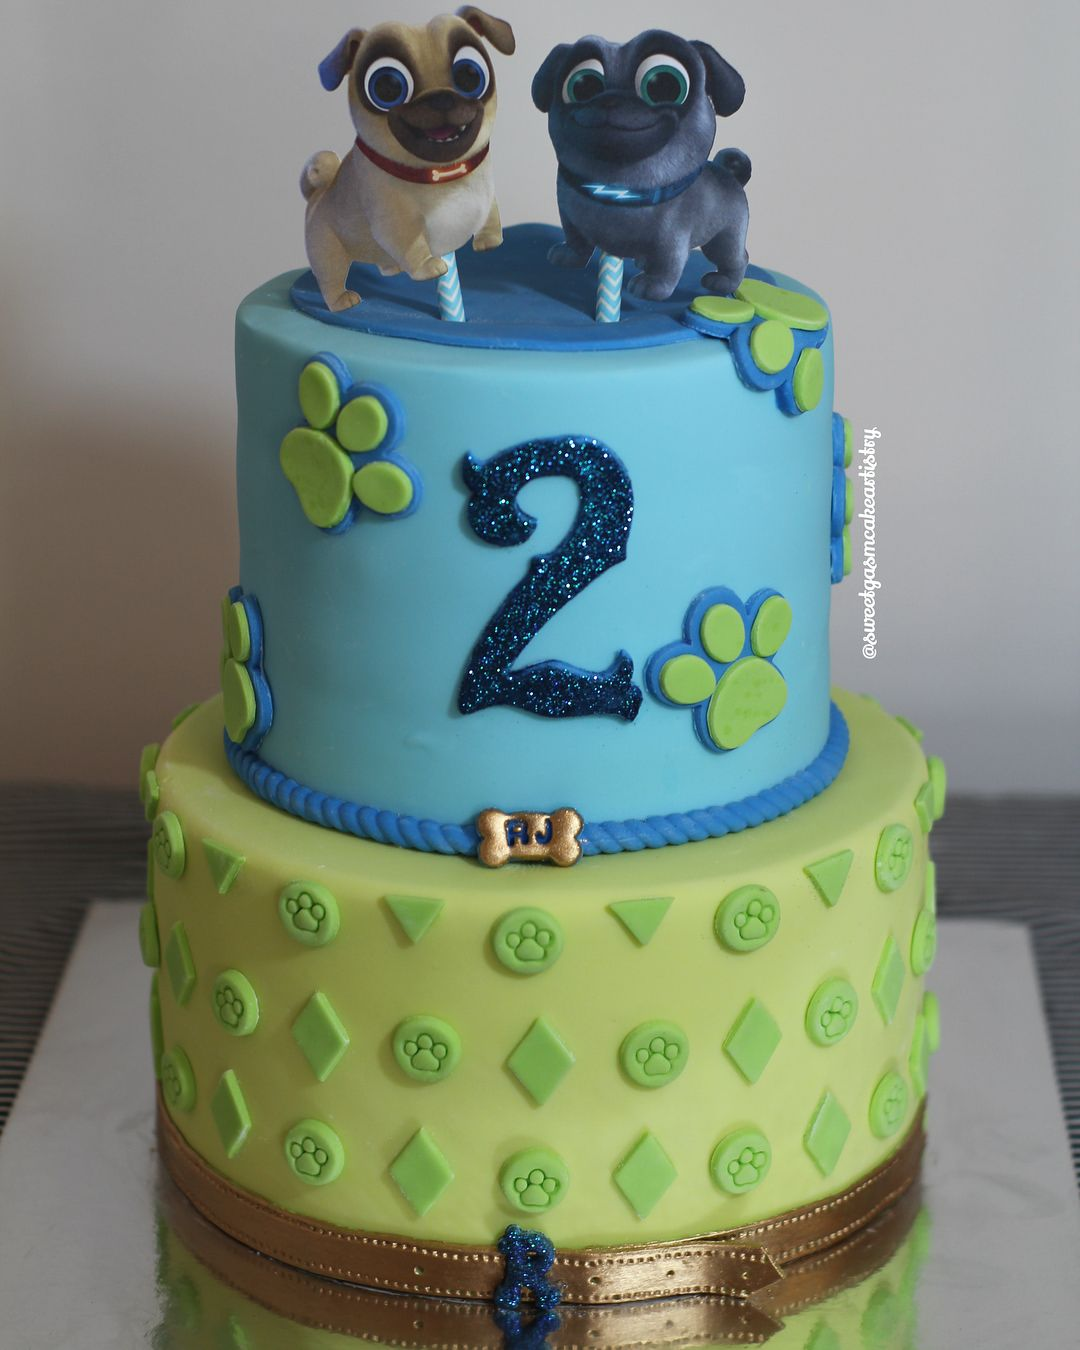 Terrific Nycbaker Nyc Baker Puppydogpalscake Puppy Birthday Parties Funny Birthday Cards Online Barepcheapnameinfo